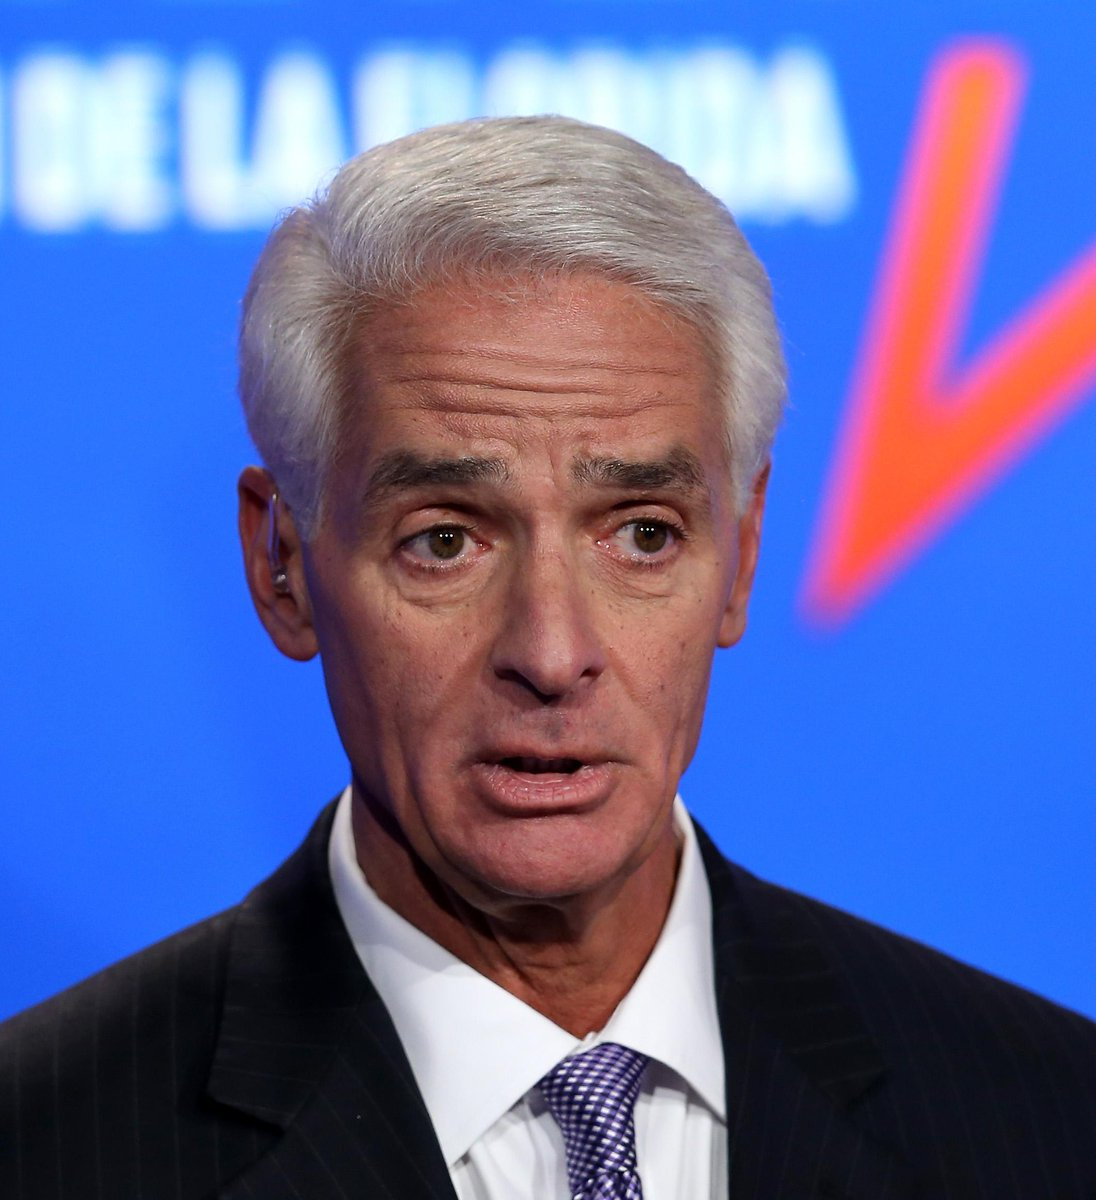 According to @jenntitus10 reporting from #CharlieCrist election headquarters, #Crist will be calling for a recount http://t.co/wkHF3mSETC